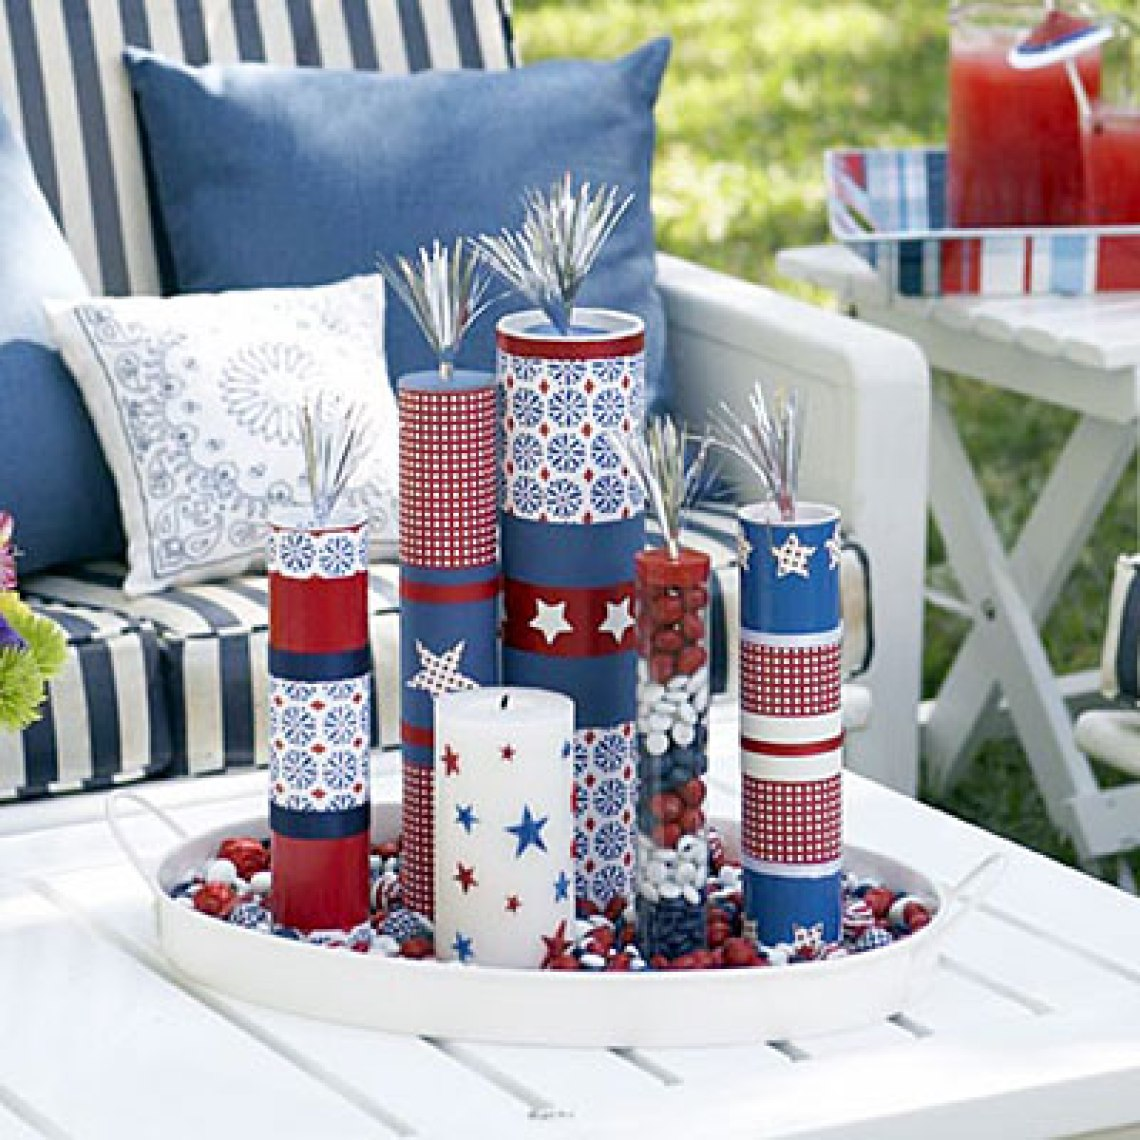 Star Spangled Sparklers. Paper Star Lights Garland. 10 Easy 4th of July Crafts to Make in 2018. Fourth of July is the perfect time to do some DIY projects to celebrate America! Make your house look patriotic with these simple red white and blue crafts. You can find 4th of July wreaths, centrepieces, firecrackers and all other 4th of July decor here. Most of these 4th of July crafts can be made by kids and toddlers. 4th of July crafts kids, 4th of July Crafts DIY, 4th of July crafts preschoolers #4thofJulycrafts